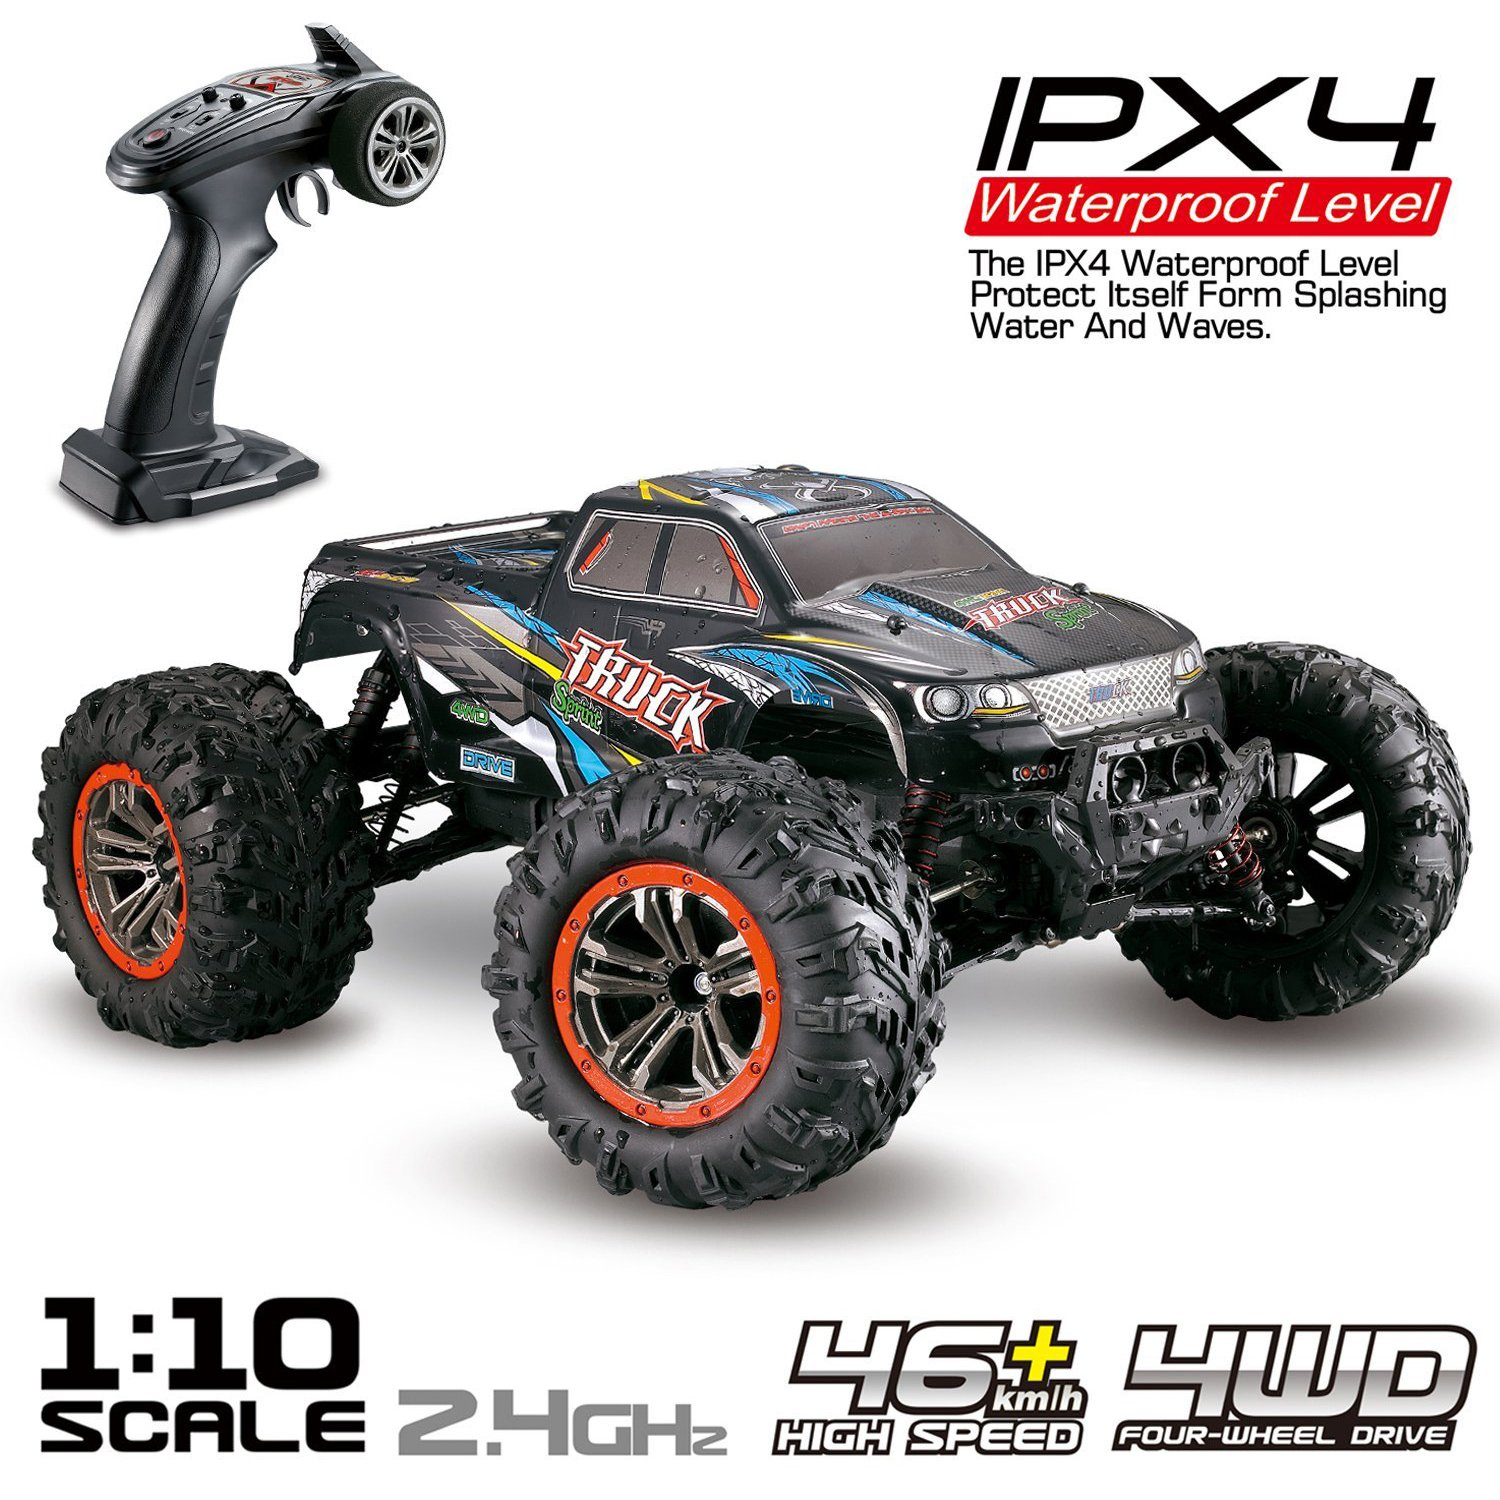 Hosim Large 1:10 Scale High Speed 46km h 4WD 2.4Ghz Remote Control Truck 9125, Radio Controlled Off-Road RC... by